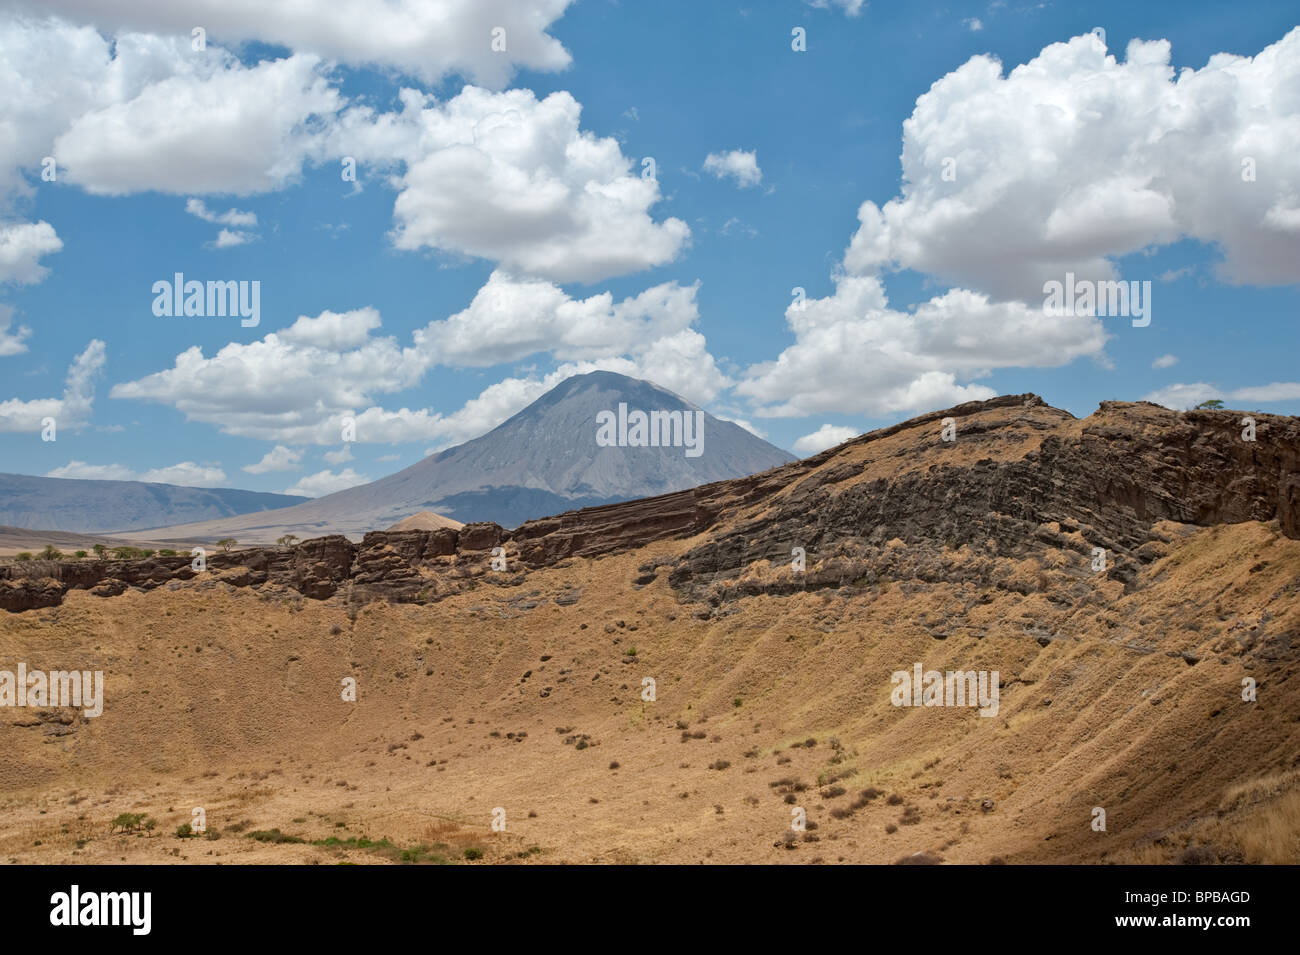 Caldera and the active volcano Ol Doinyo Lengai in the Rift Valley of Tanzania - Stock Image